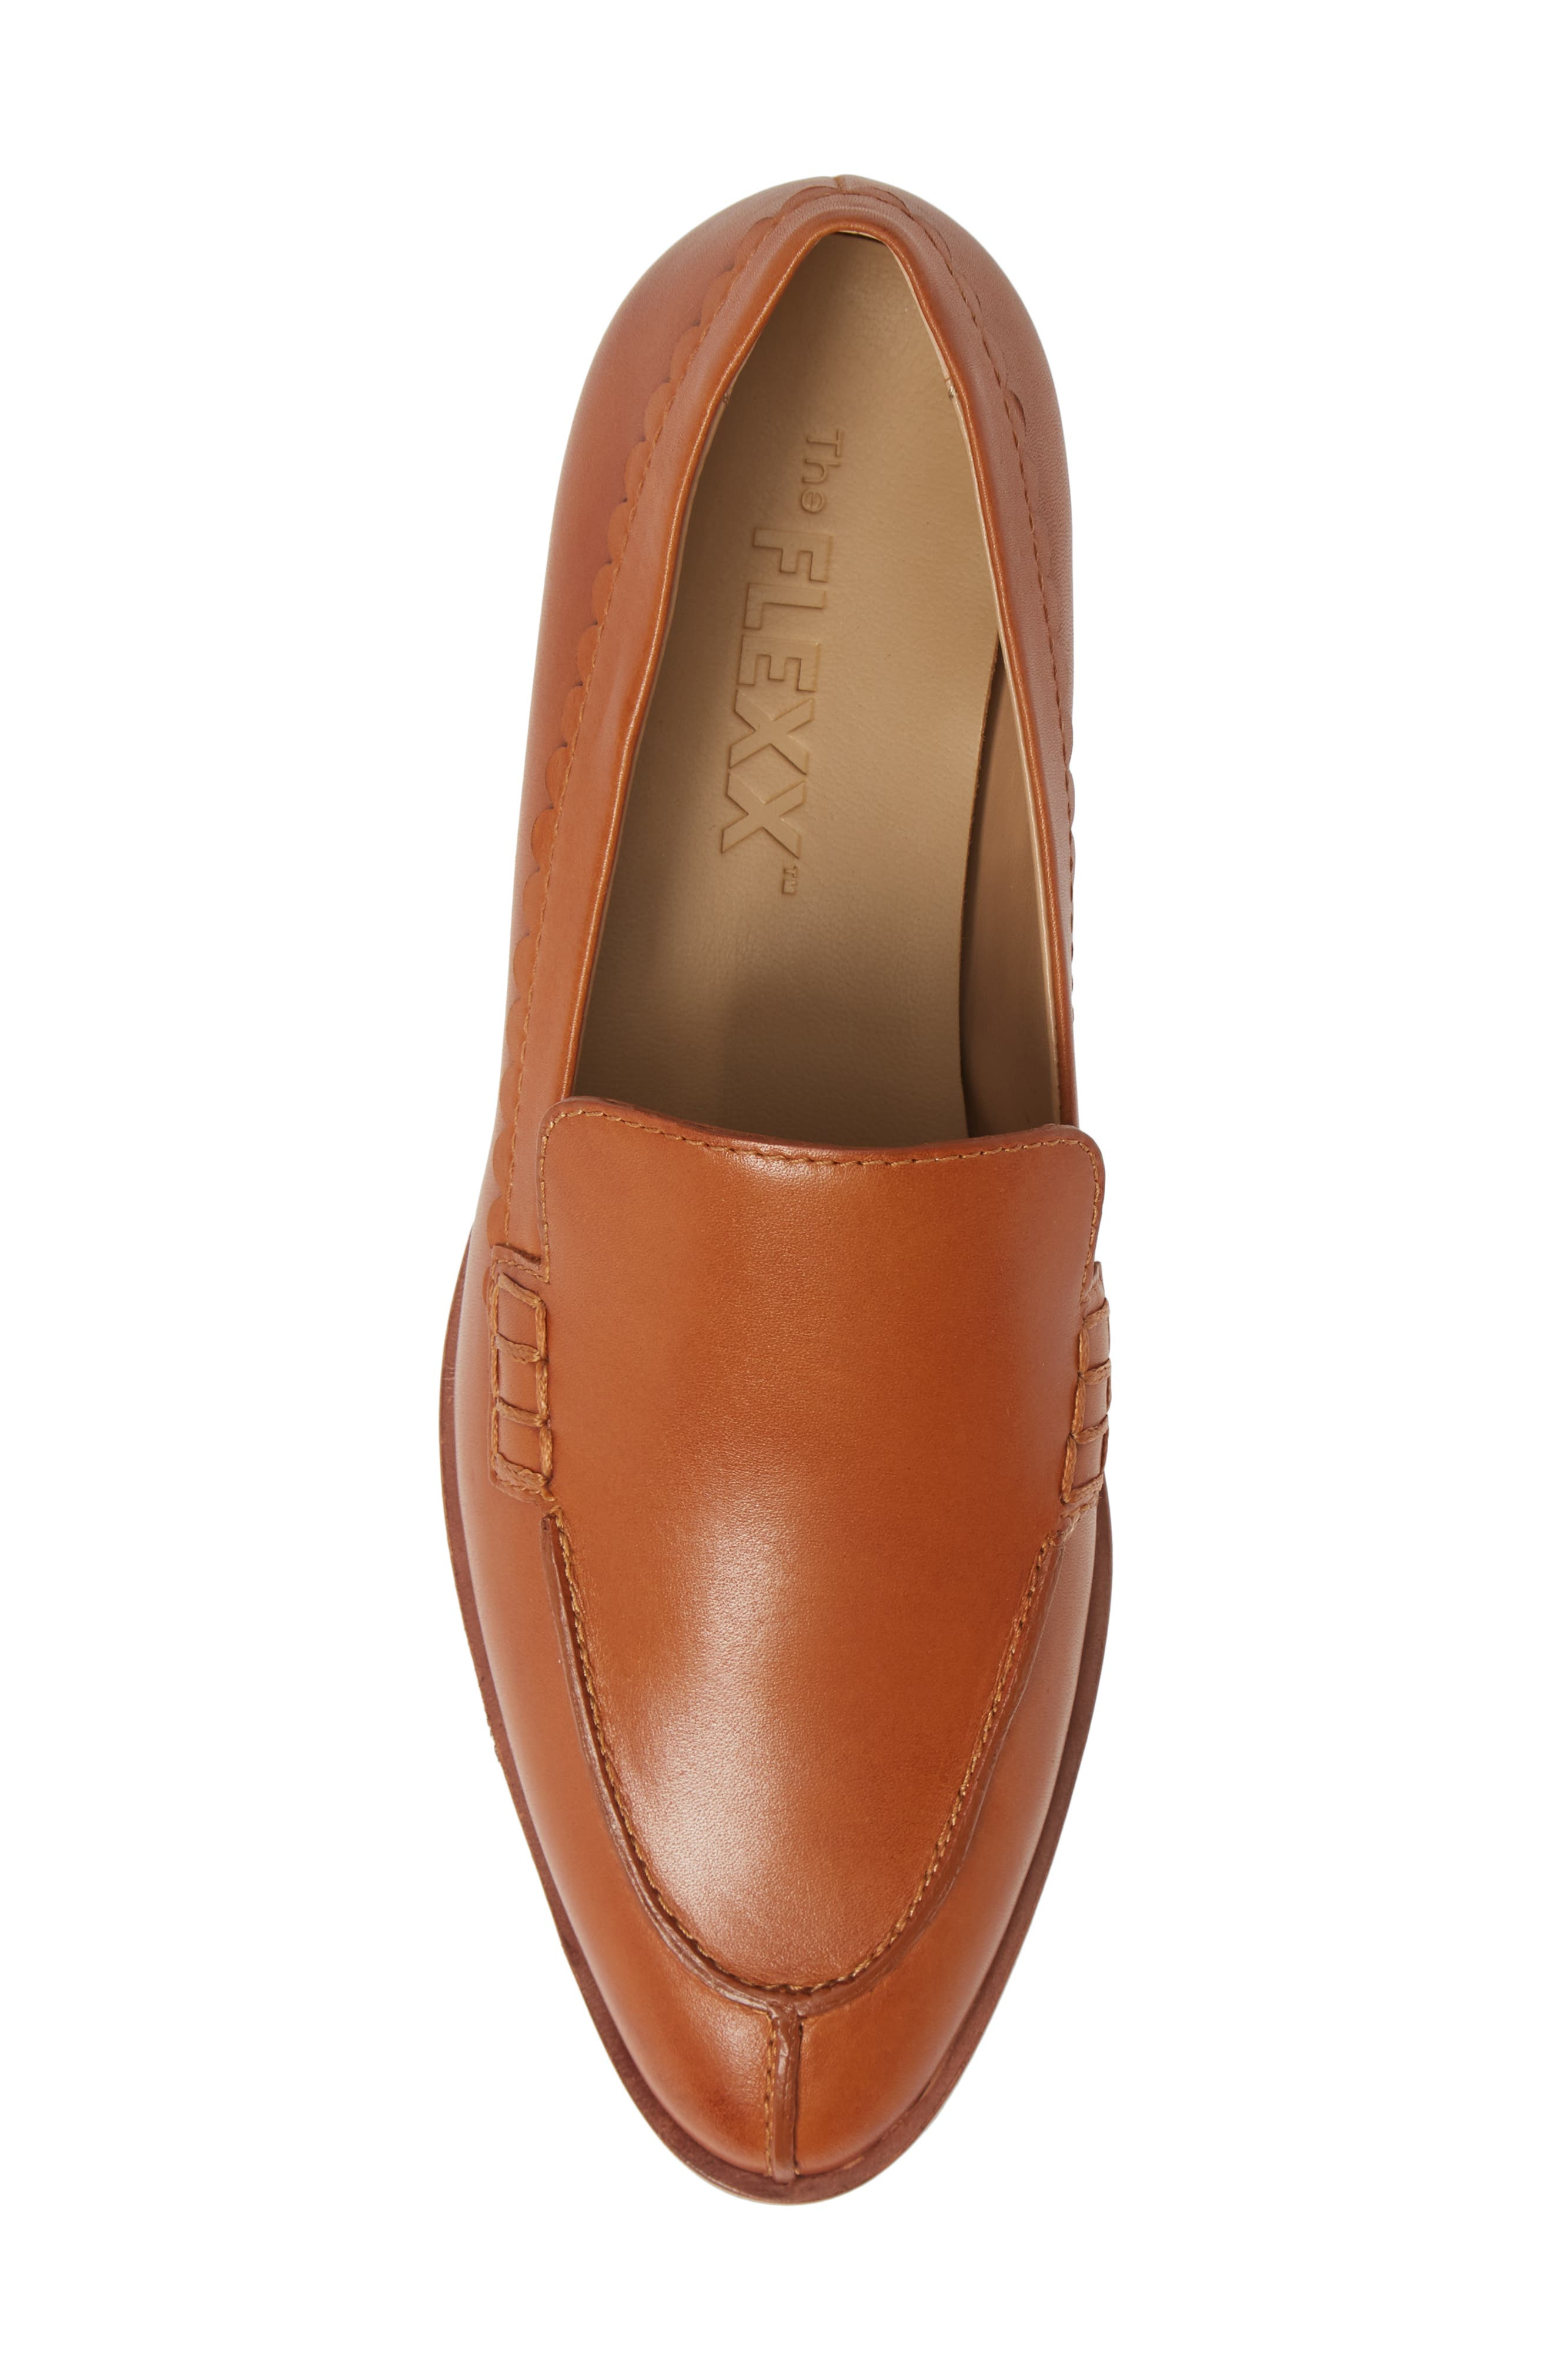 Bowery Loafer,                             Alternate thumbnail 5, color,                             COCONUT VACHETTA LEATHER